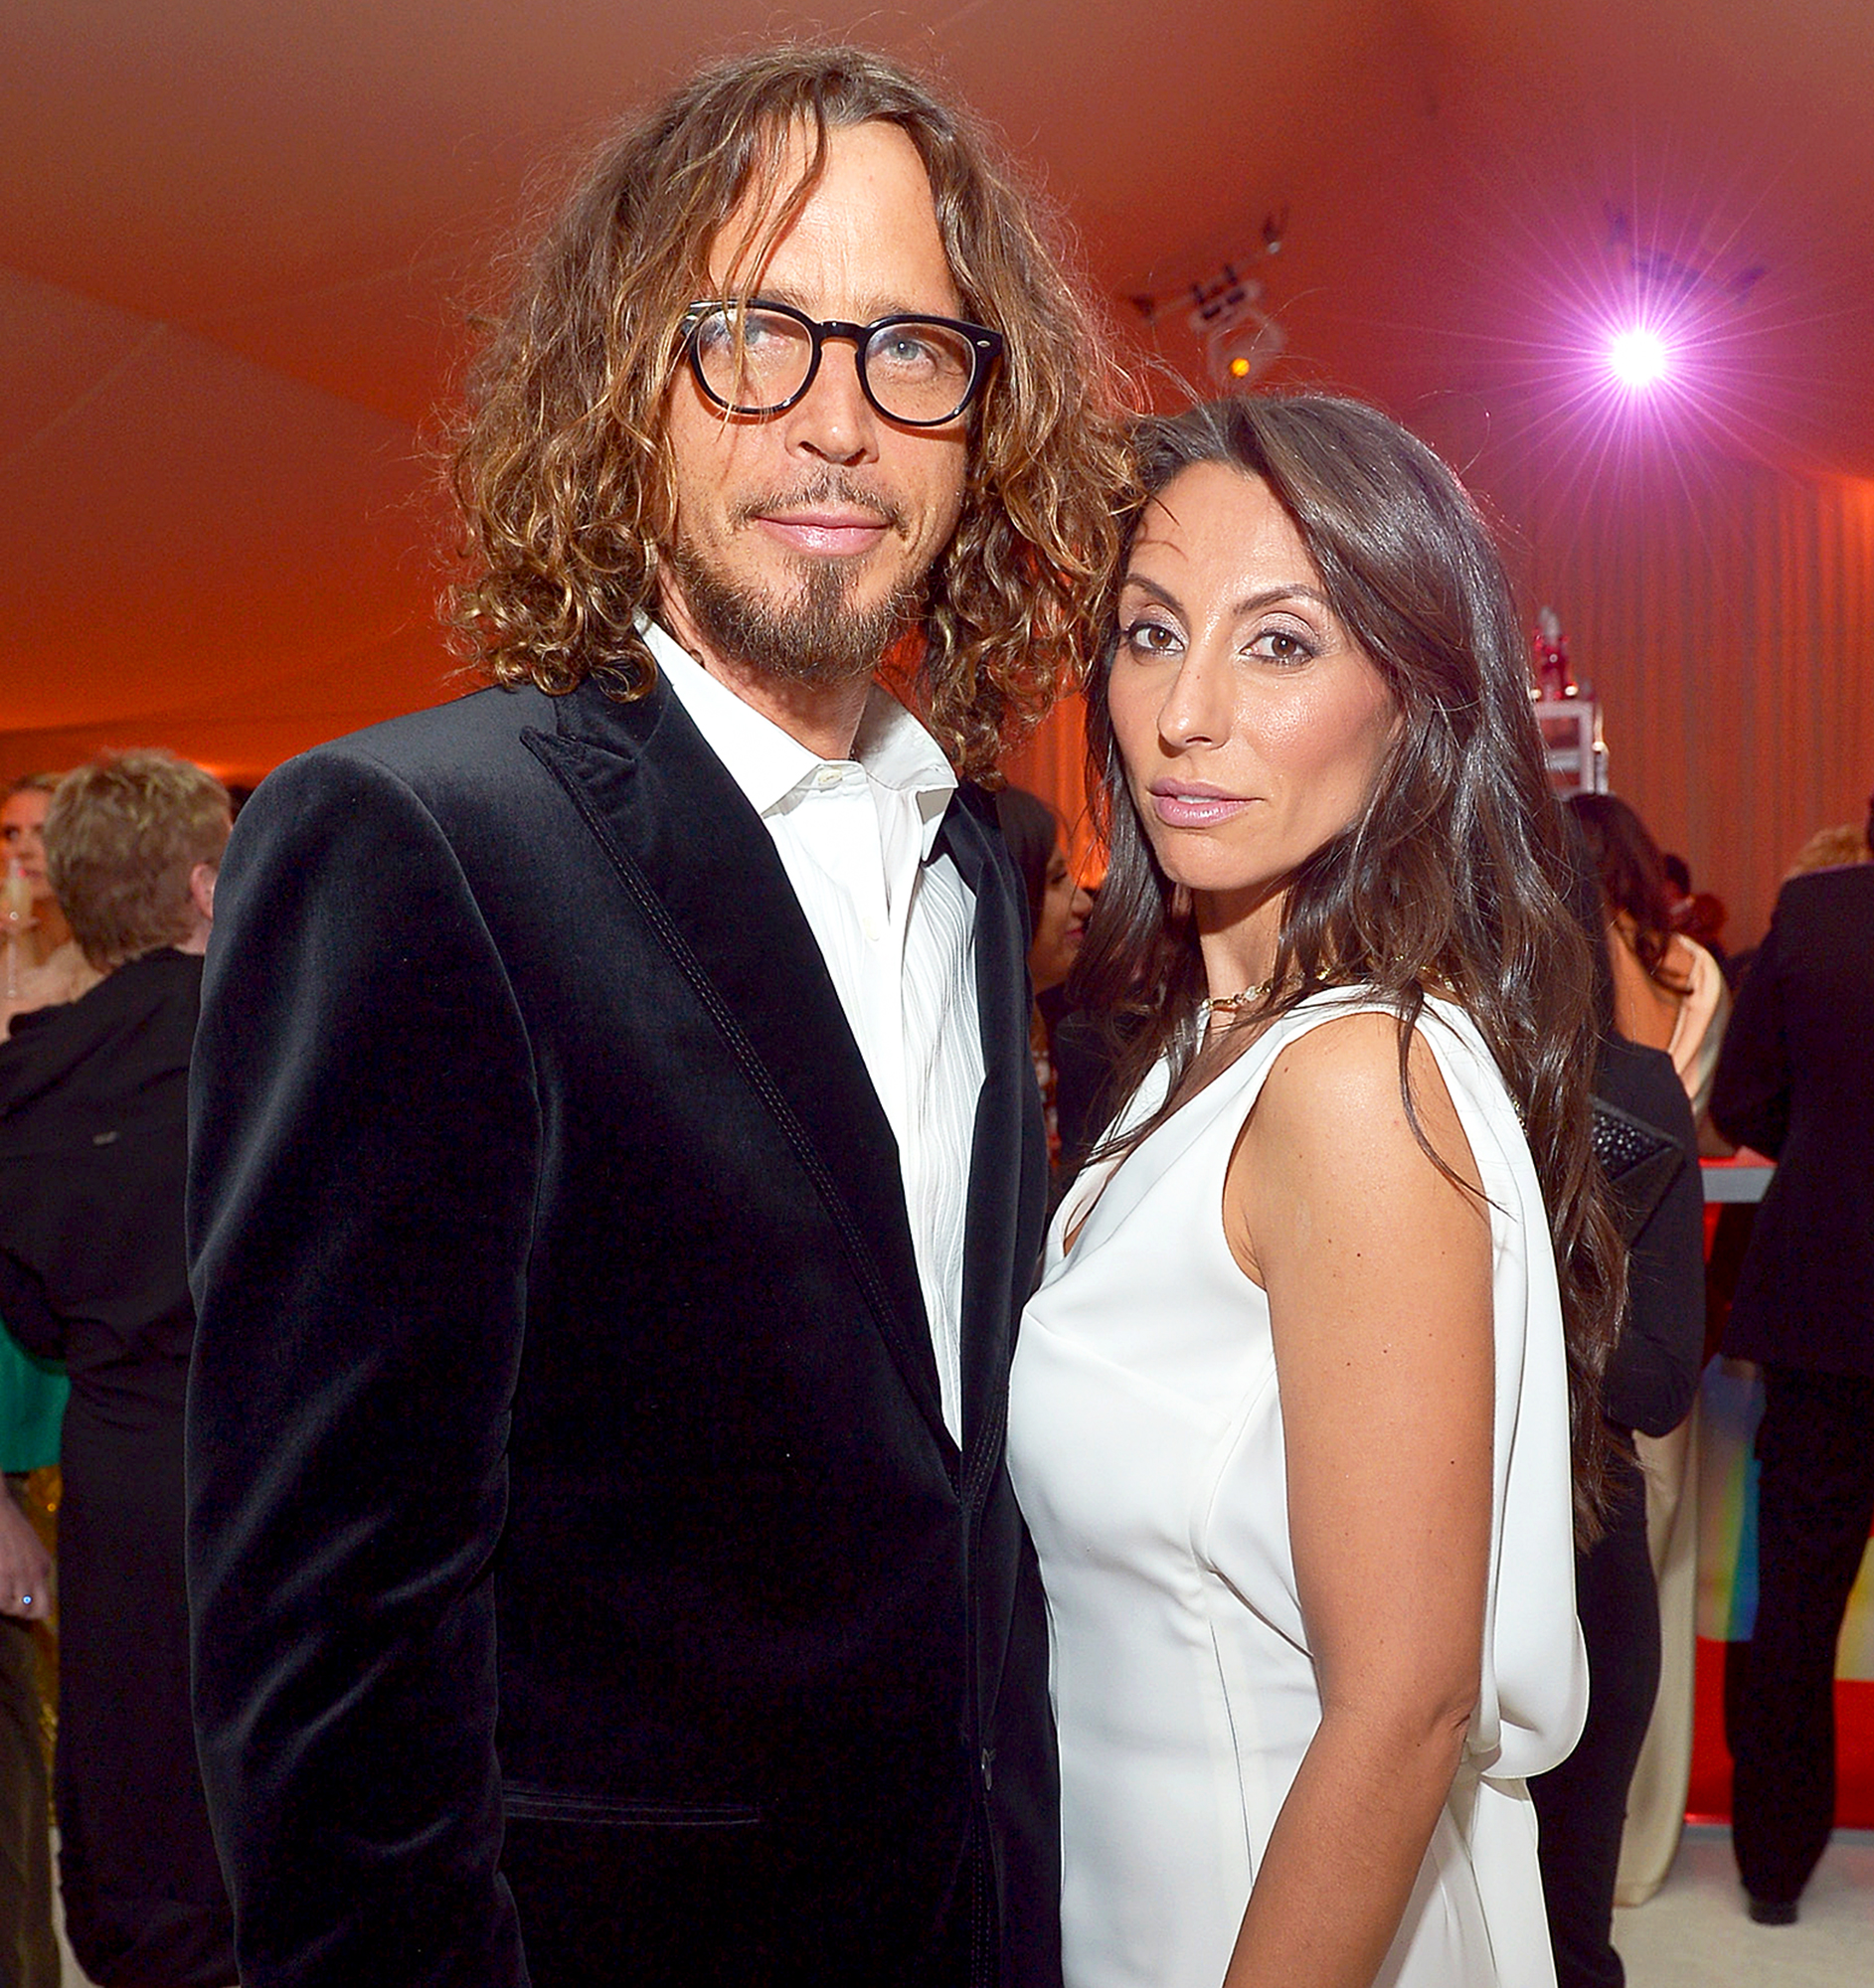 Chris Cornell's widow opens up about his addiction